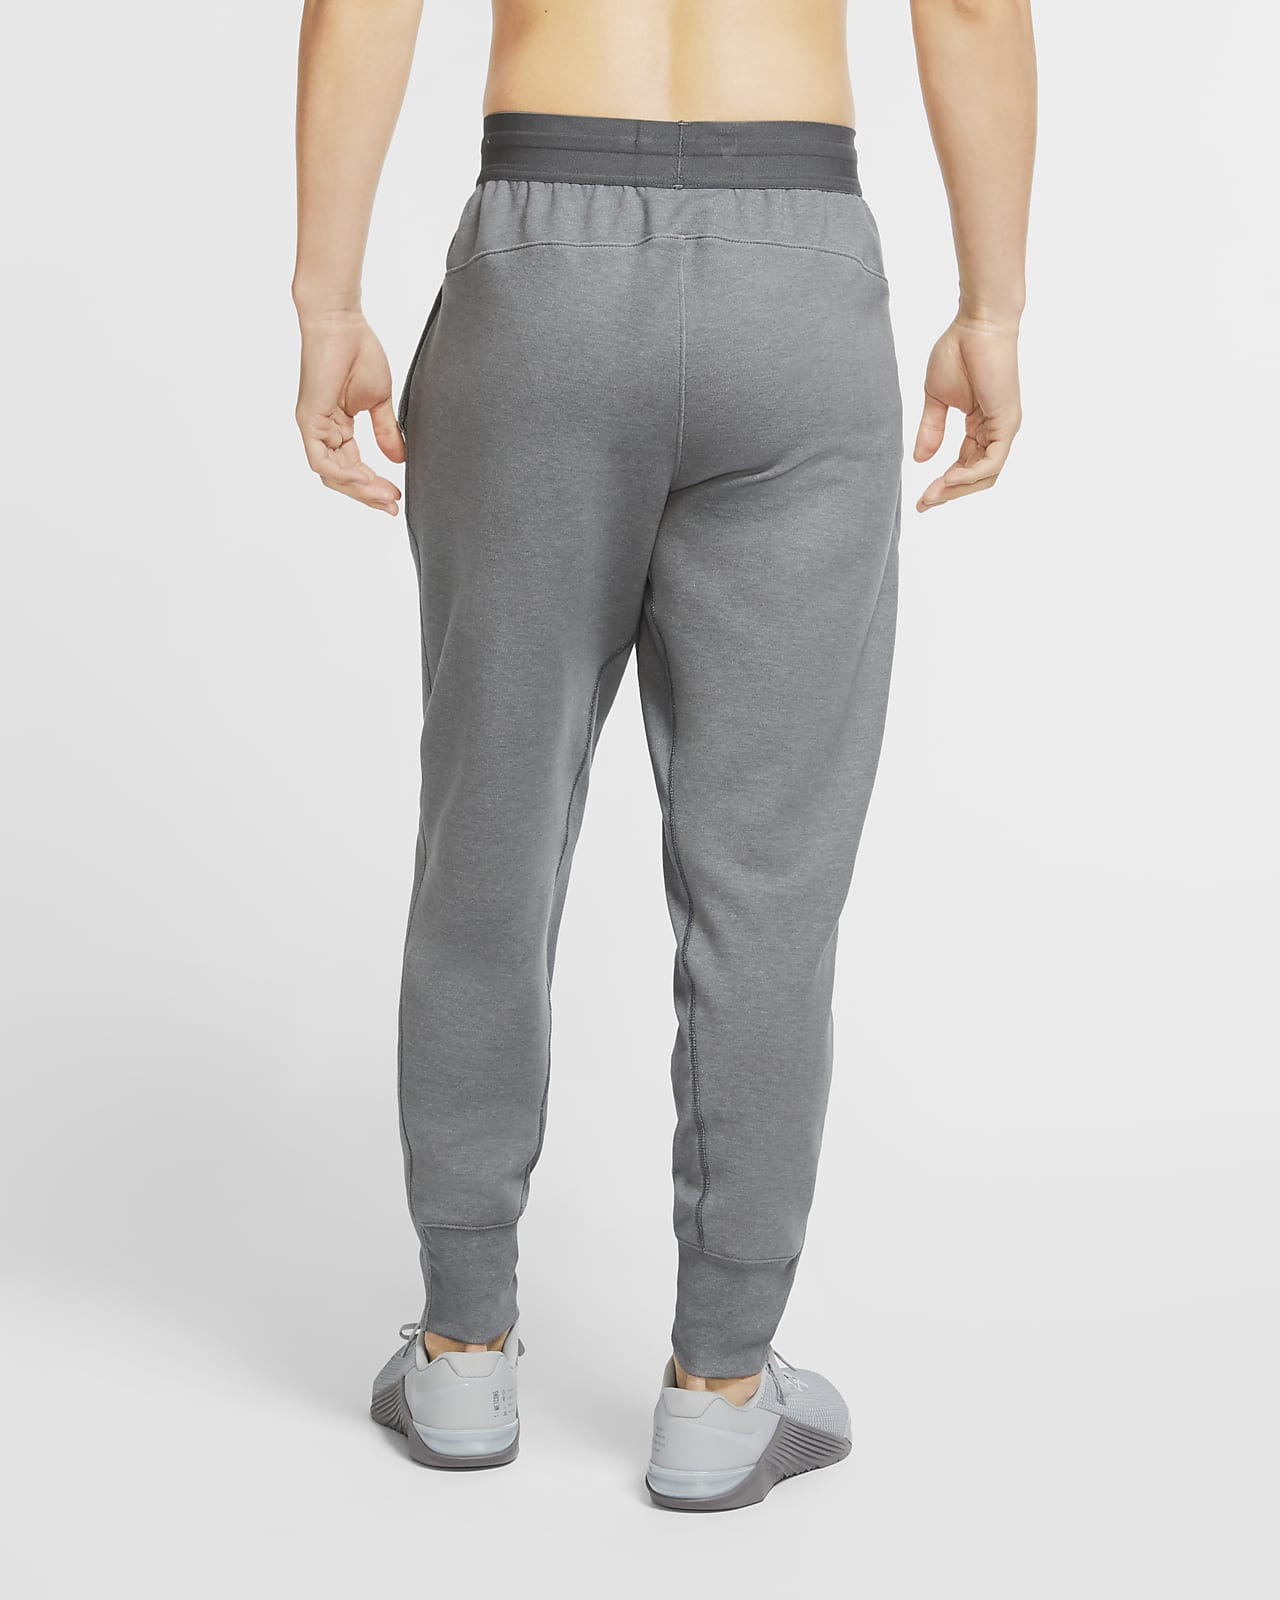 Nike Yoga Men's Trousers